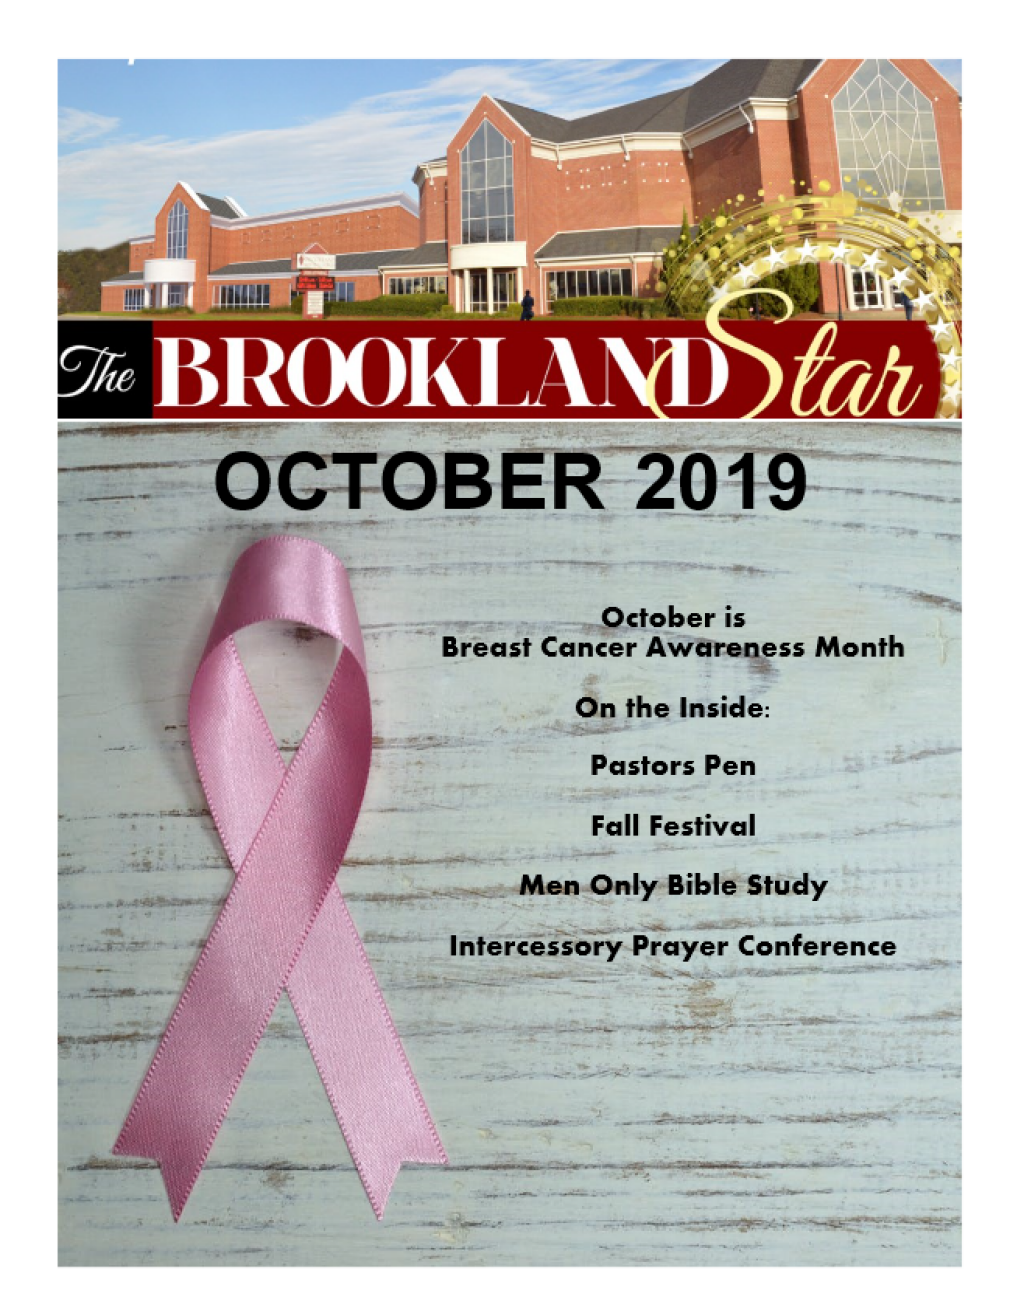 The Brookland Star October 2019 Edition